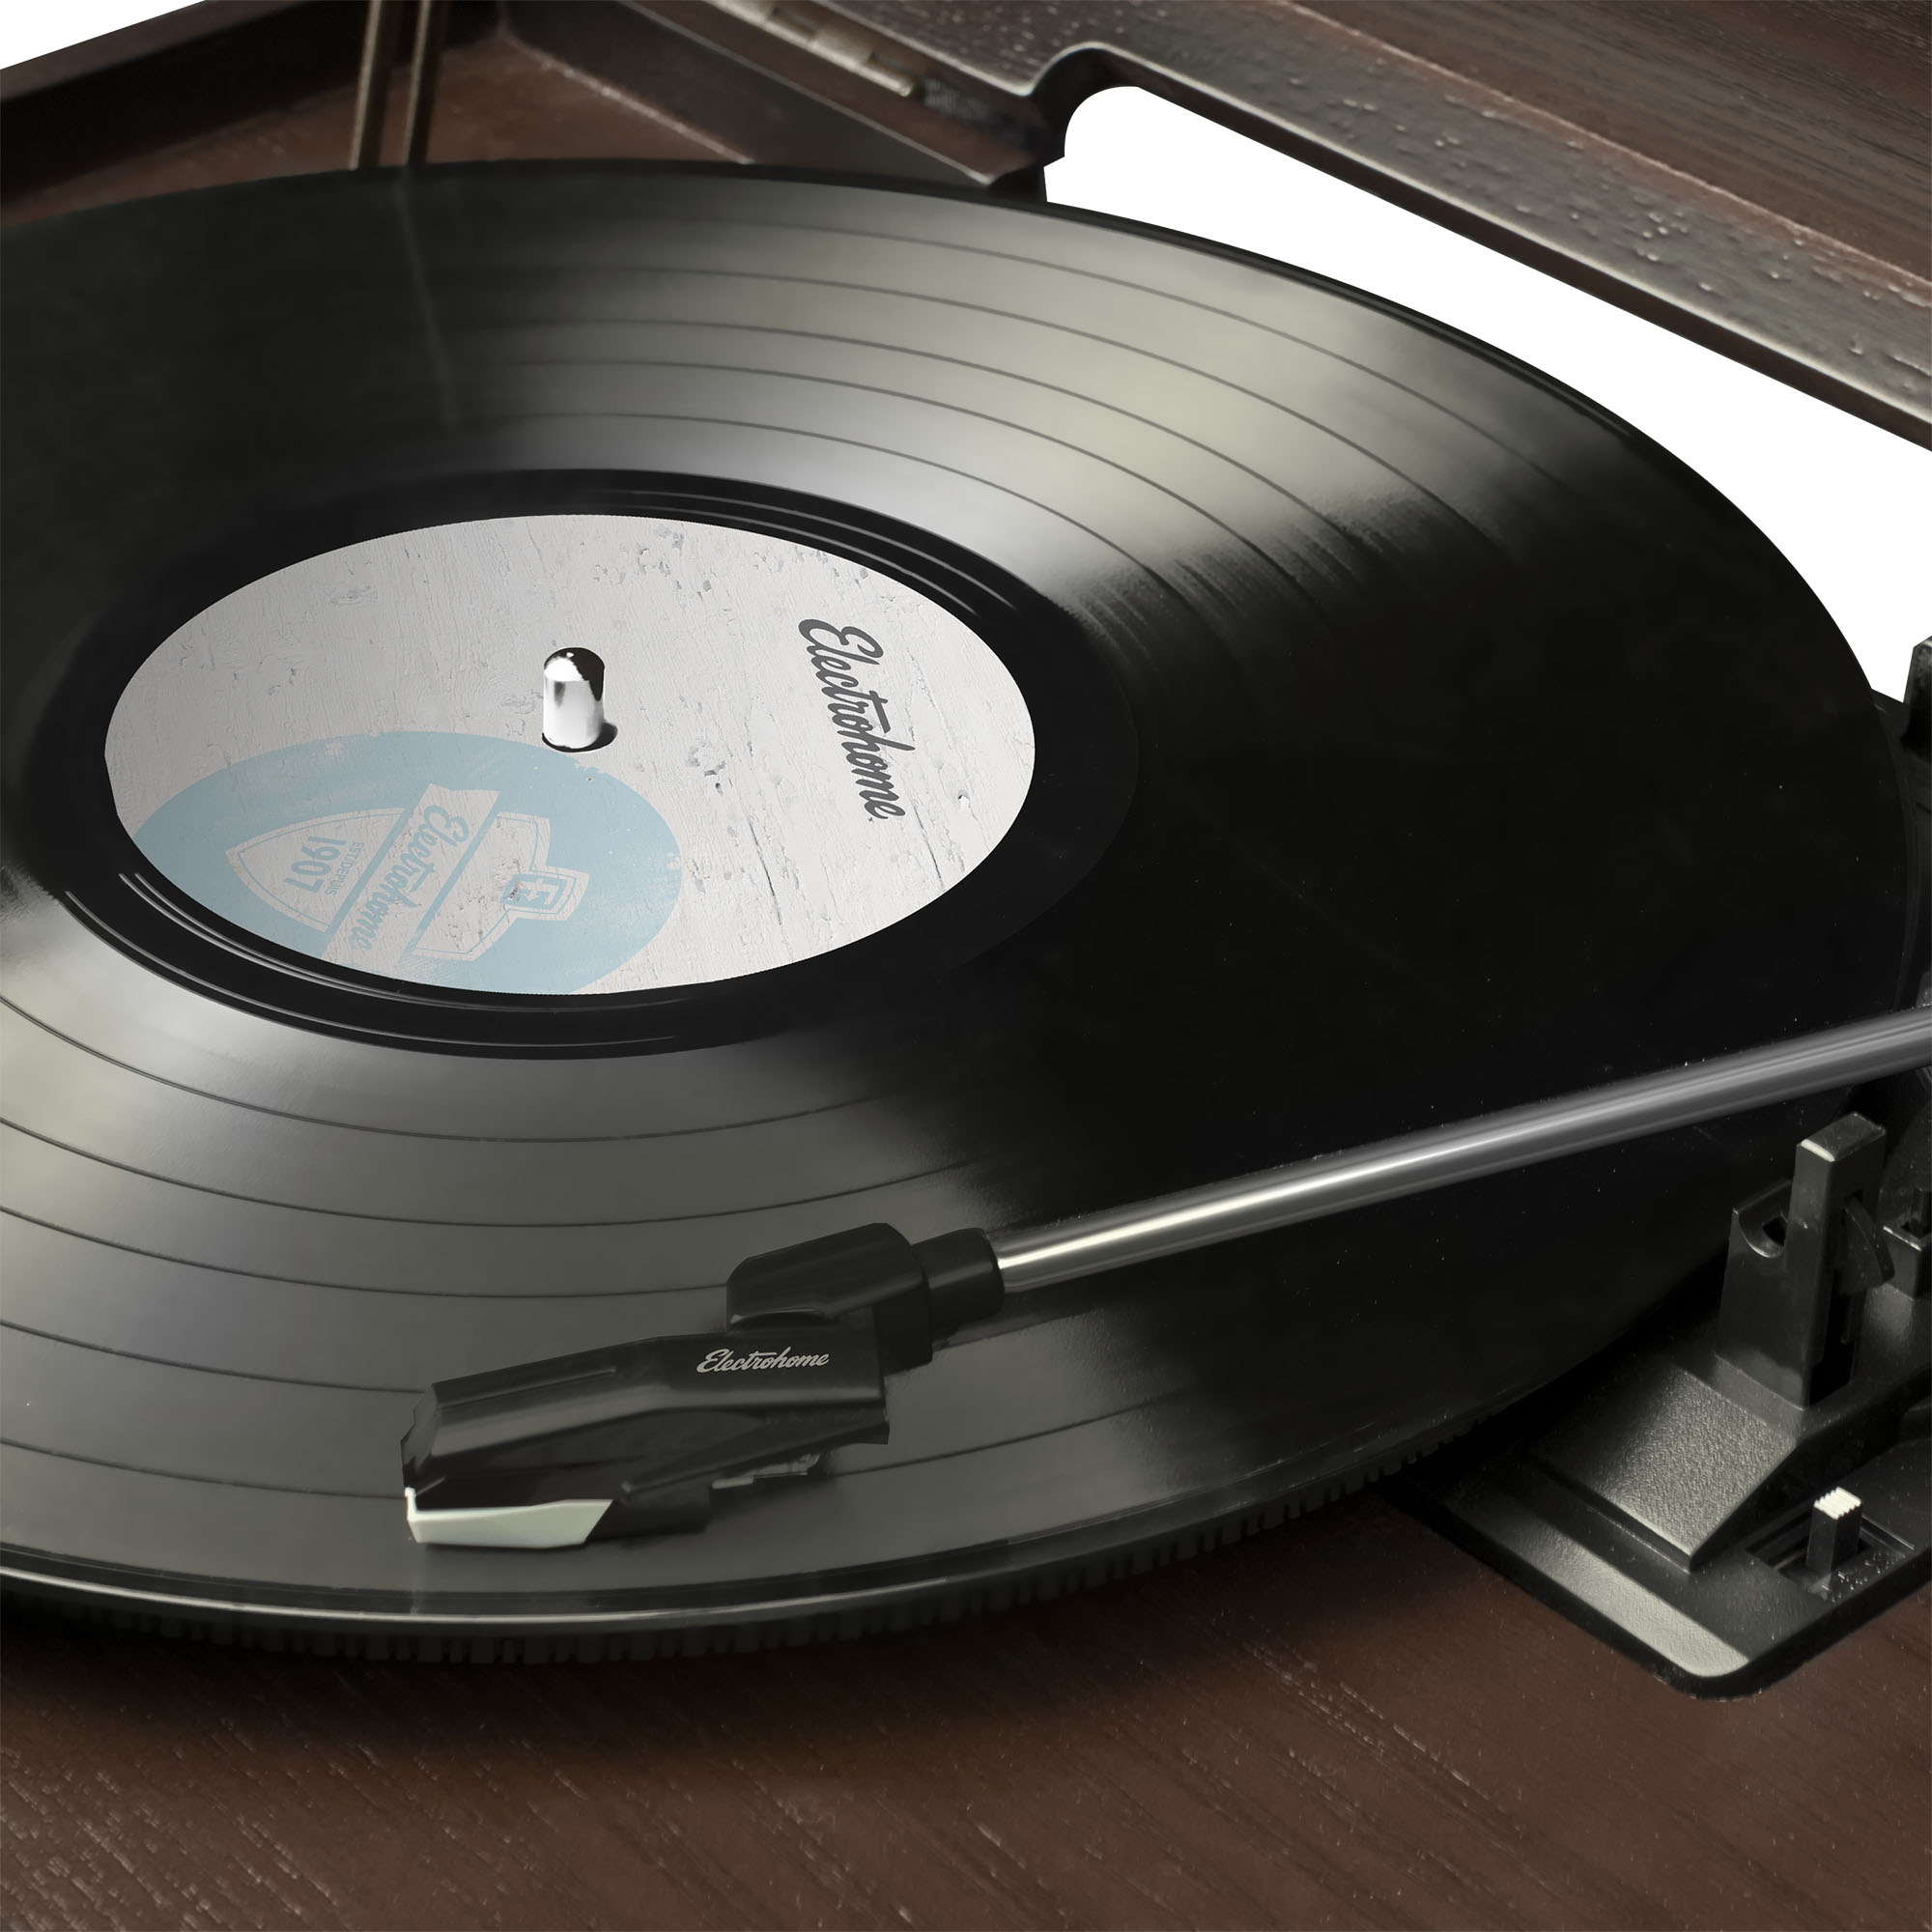 Shoptronics Electrohome Signature Vinyl Record Player